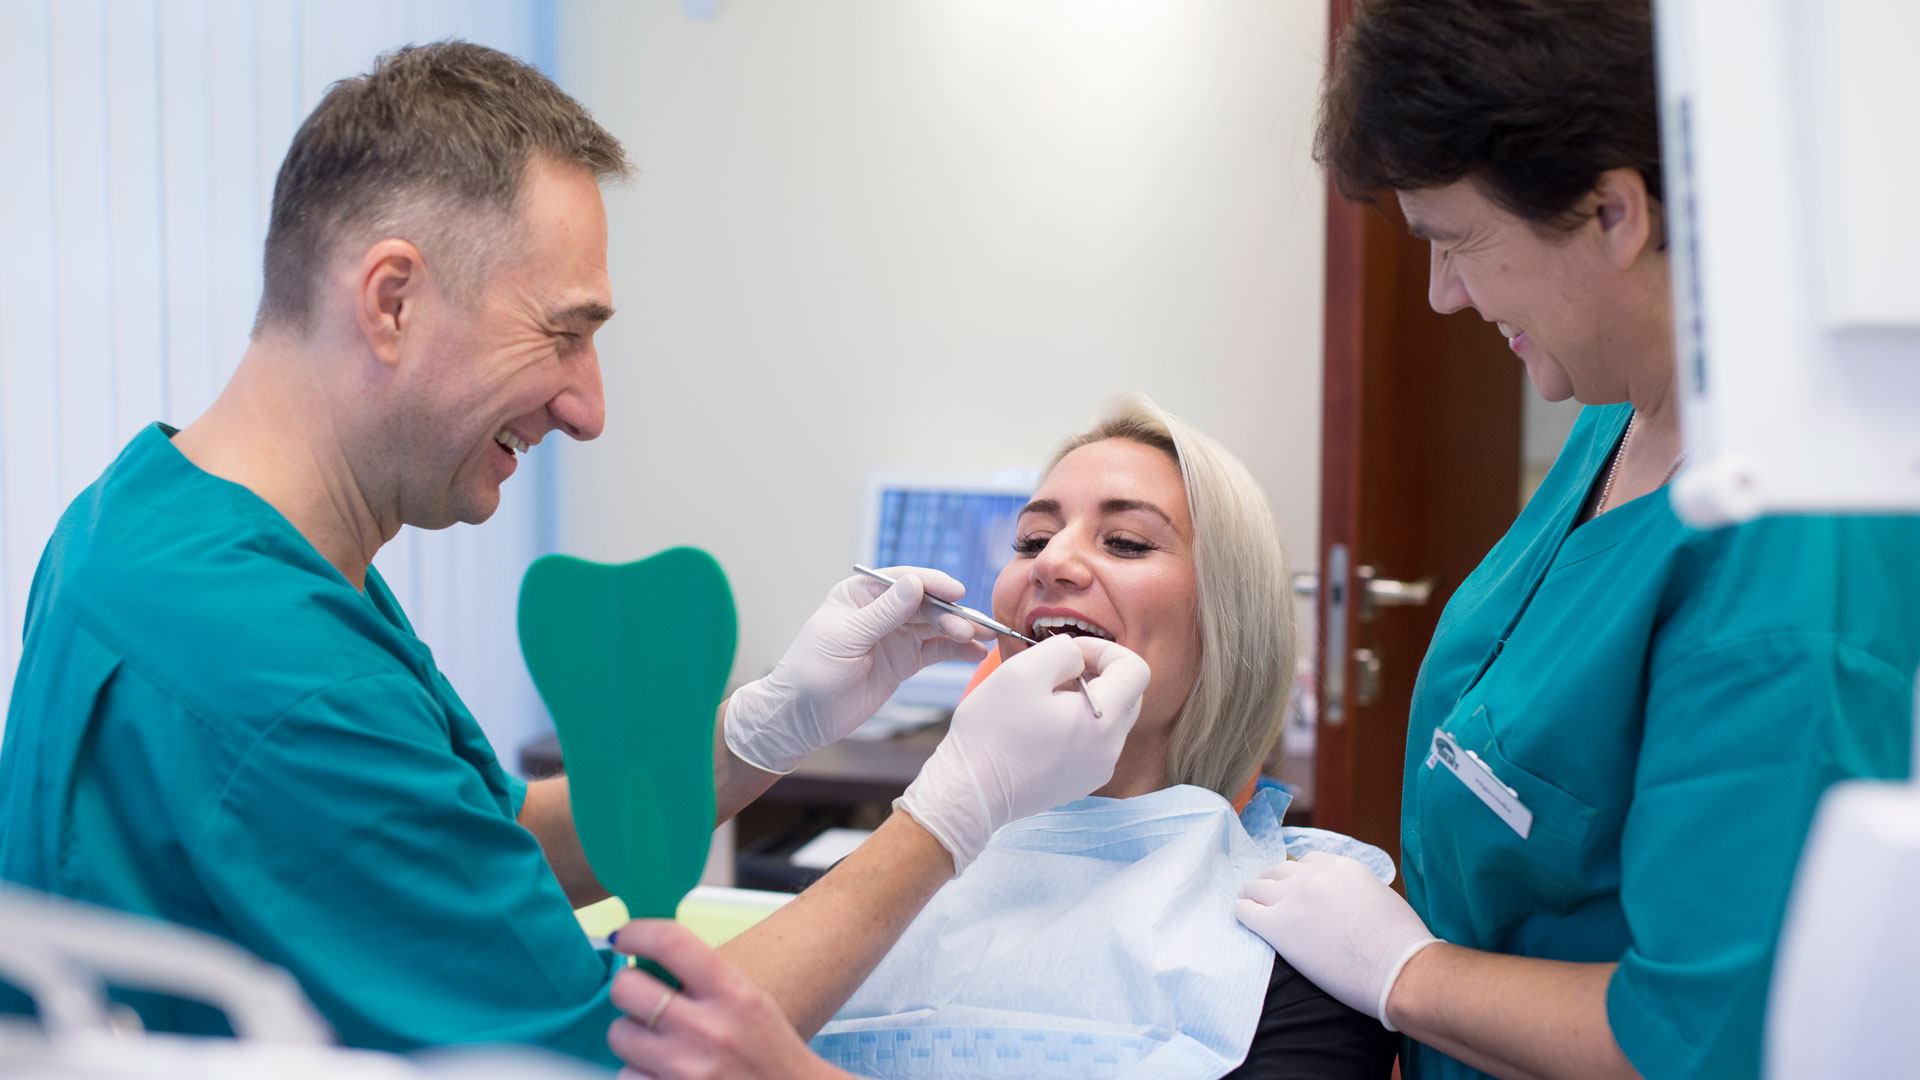 dental clinic website photography